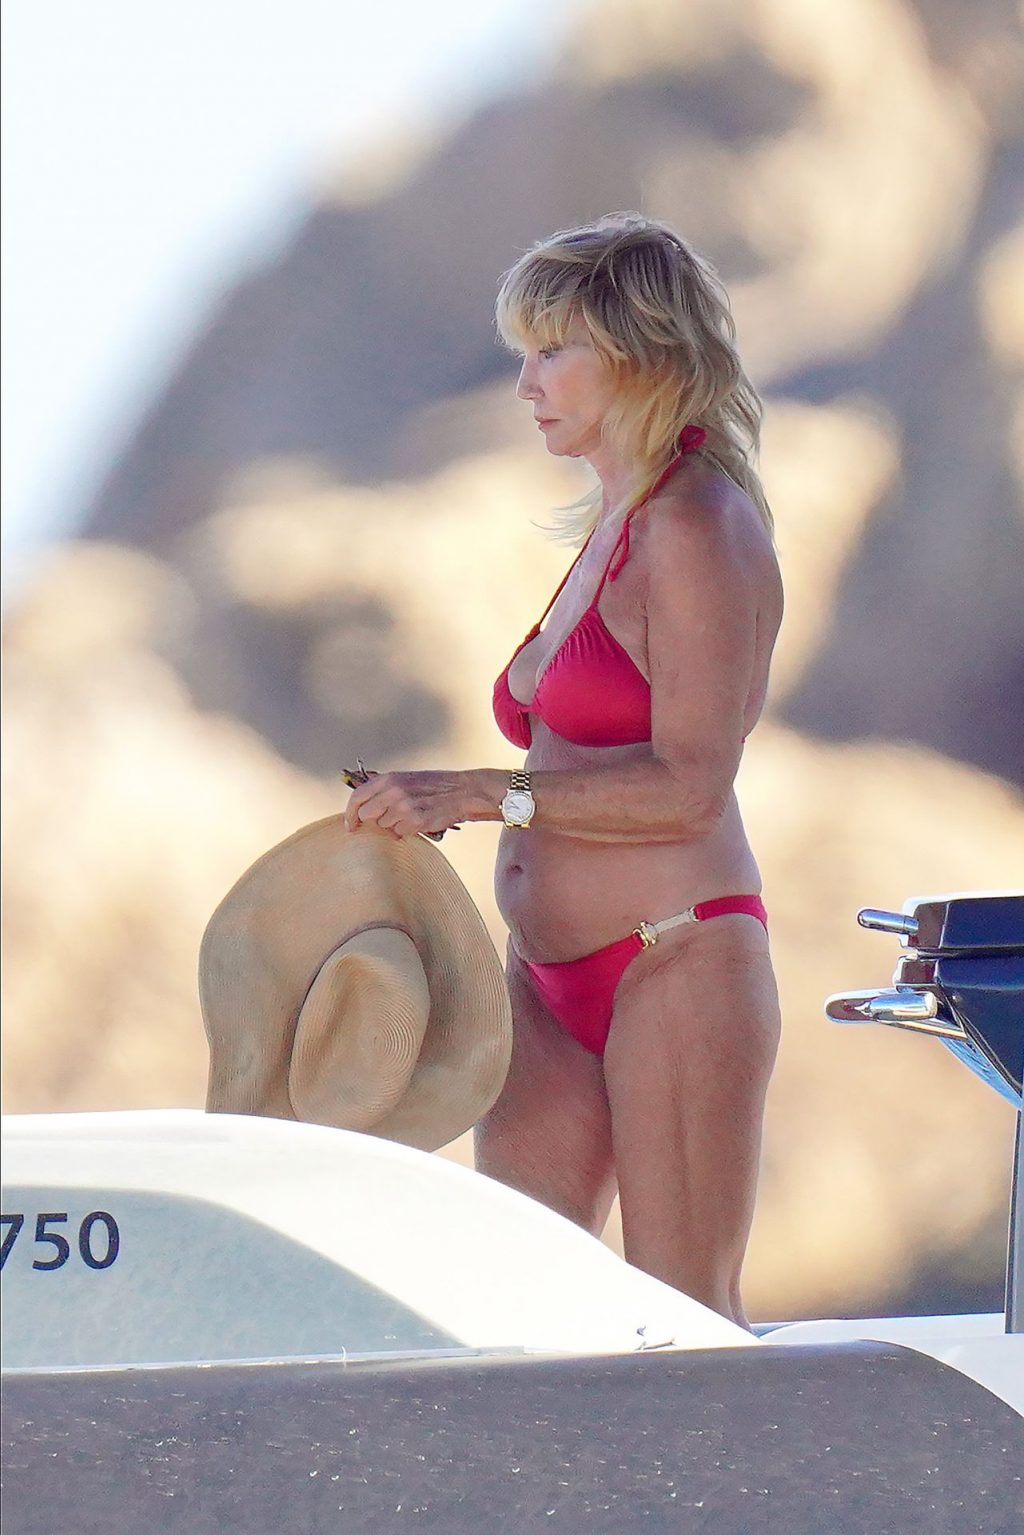 Susie Vanner Looks Amazing in a Red Bikini (49 Photos)